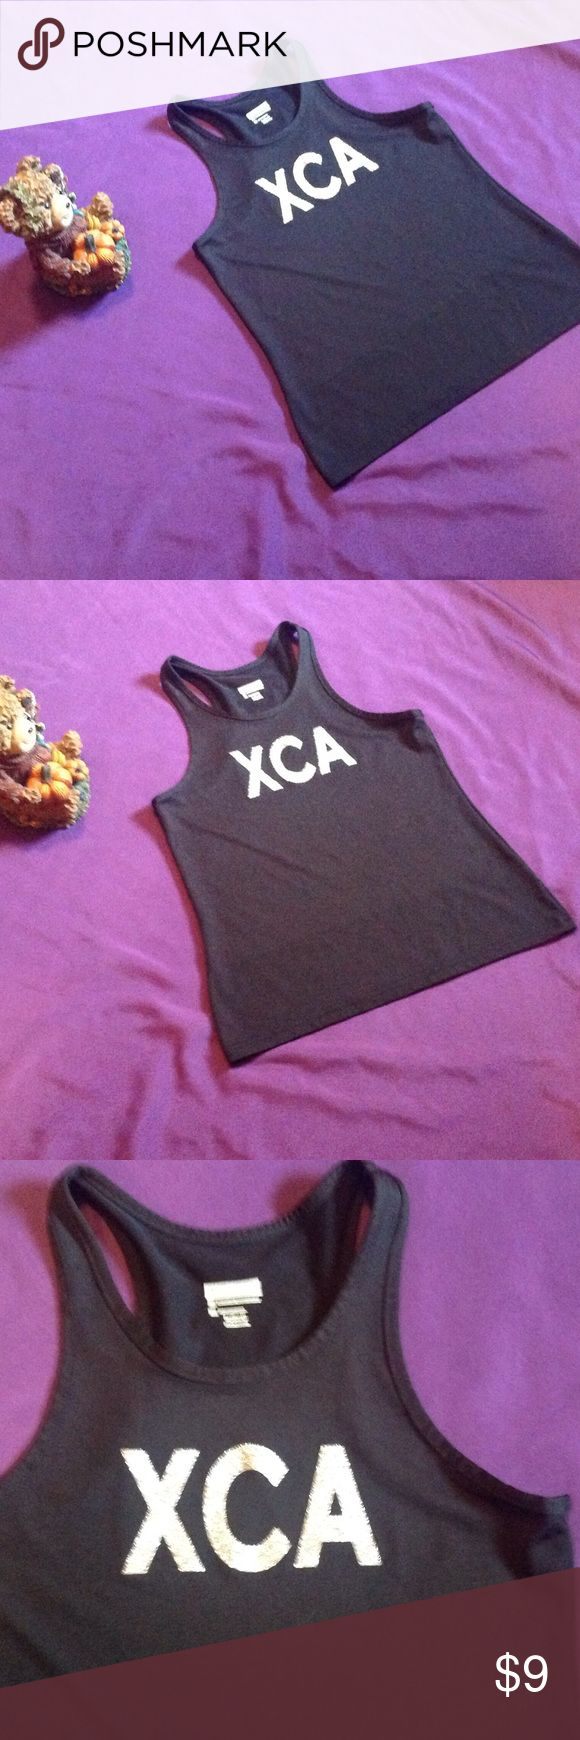 """Augusta black ladies tank top in medium Cut little tank from Augusta Sportswear in black size medium. Measurements are as follows: bust 32"""", length 22 1/2"""". In excellent preowned condition. Tops Tank Tops"""